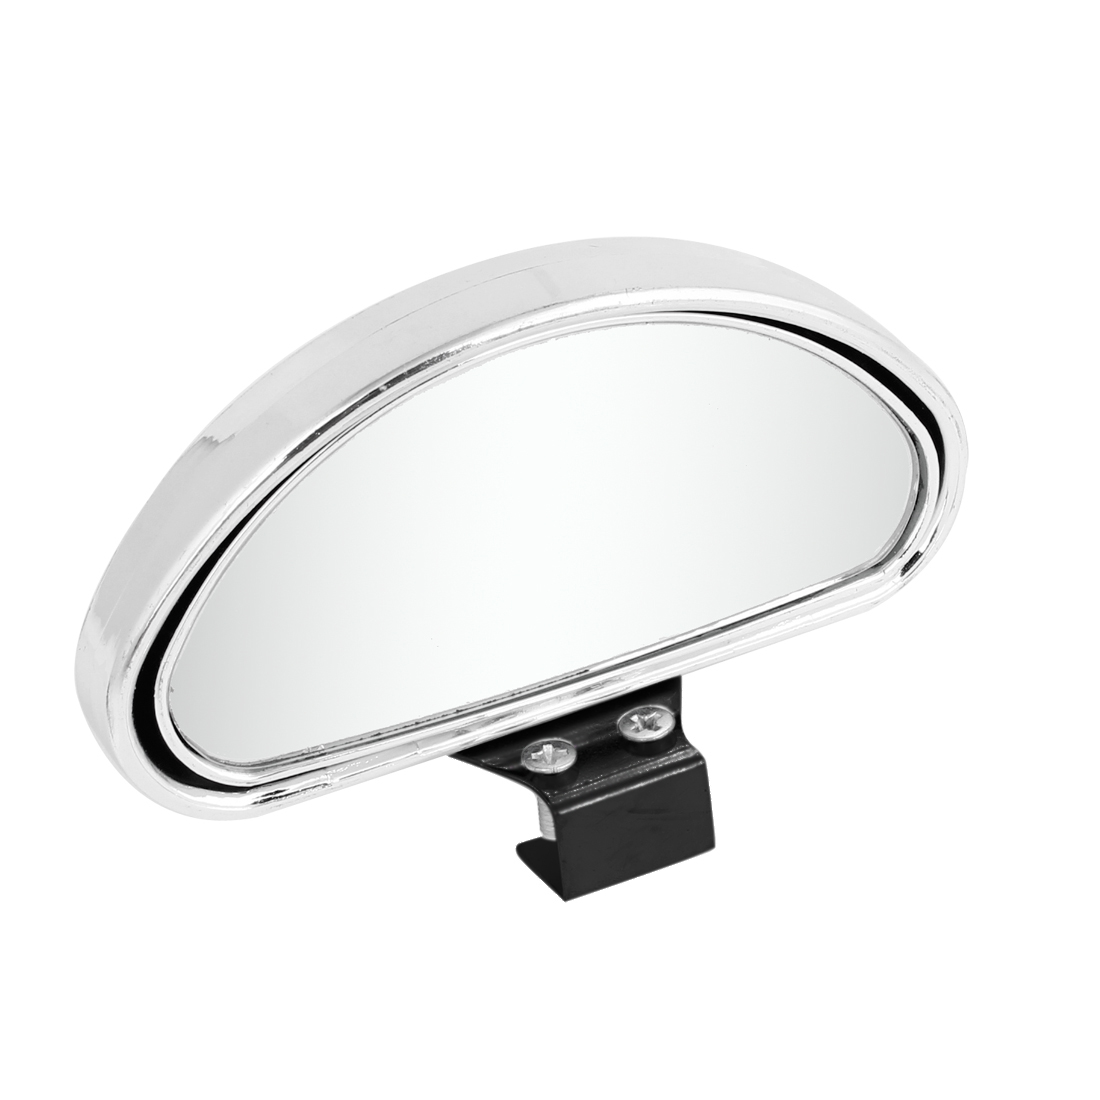 Silver Tone Arch Shaped Convex Adjustable Wide Angle Car Truck Blind Spot Mirror